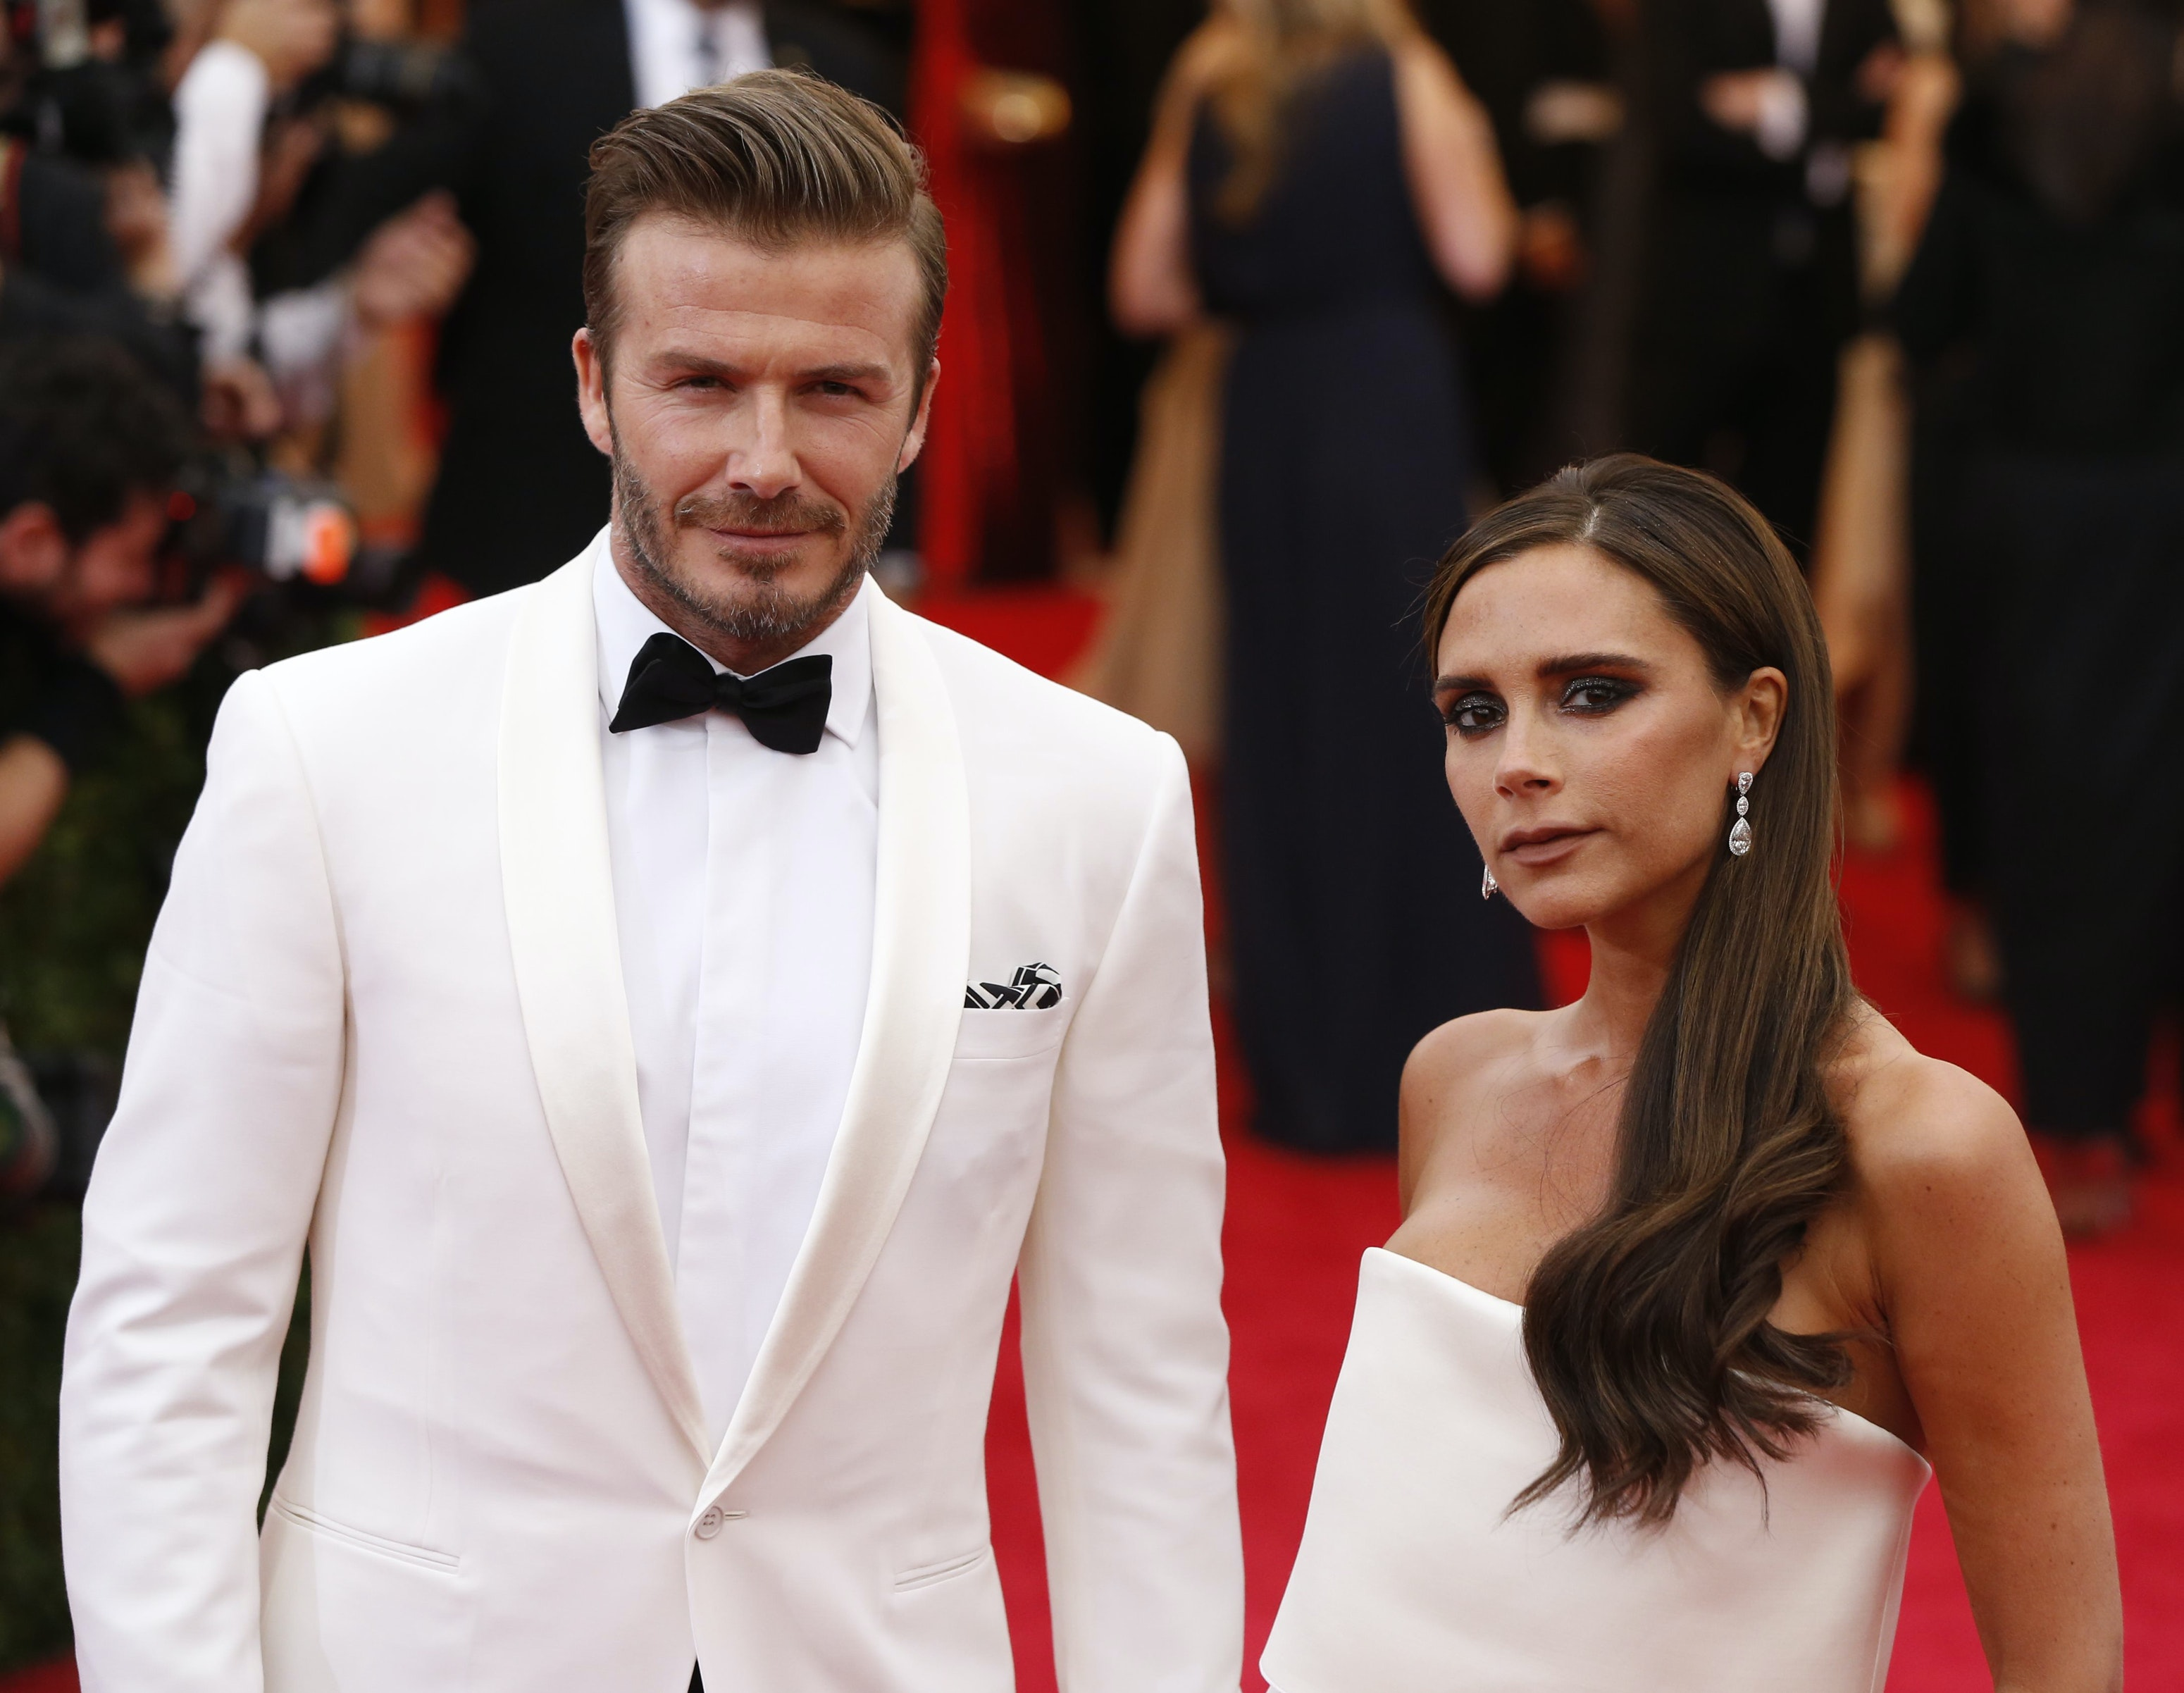 Is David Beckham Right To Let His Four Year Old Daughter Use A Dummy